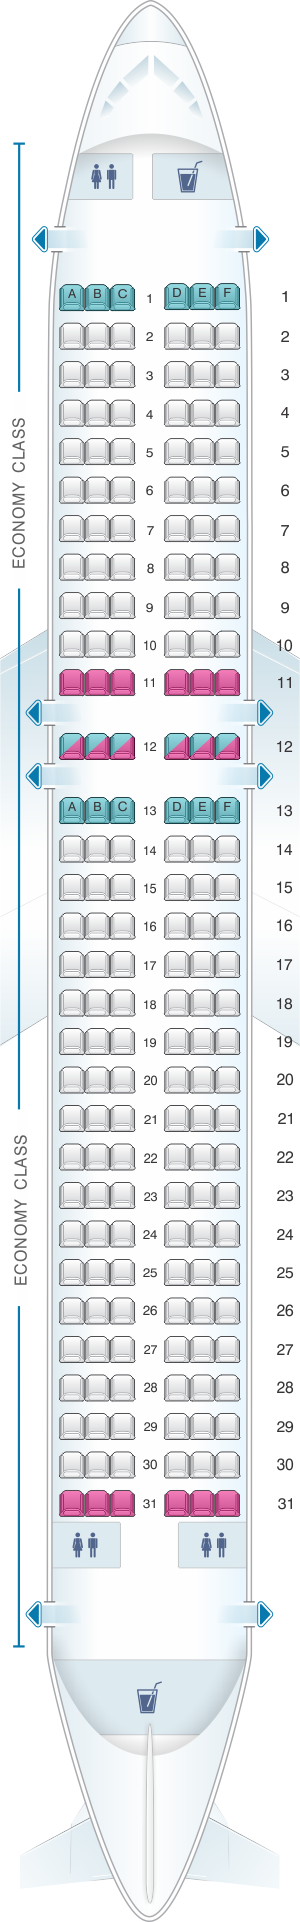 Seat map for Wizz Air Airbus A320B